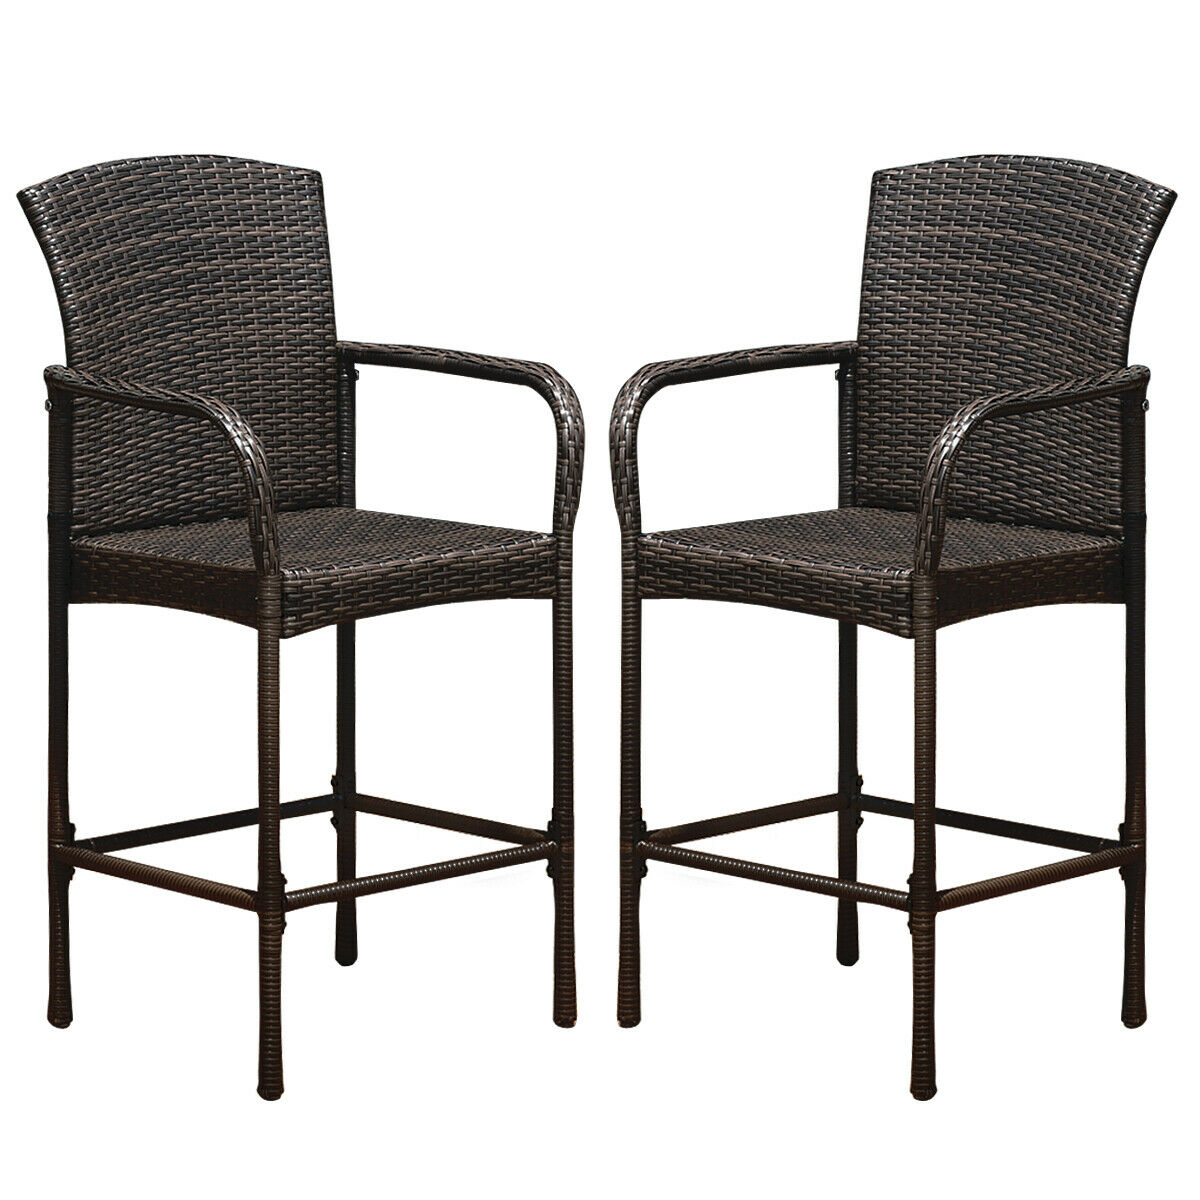 Costway Set Of Two Outdoor Rattan Wicker Bar Chair Seat Patio Furniture With Armrest